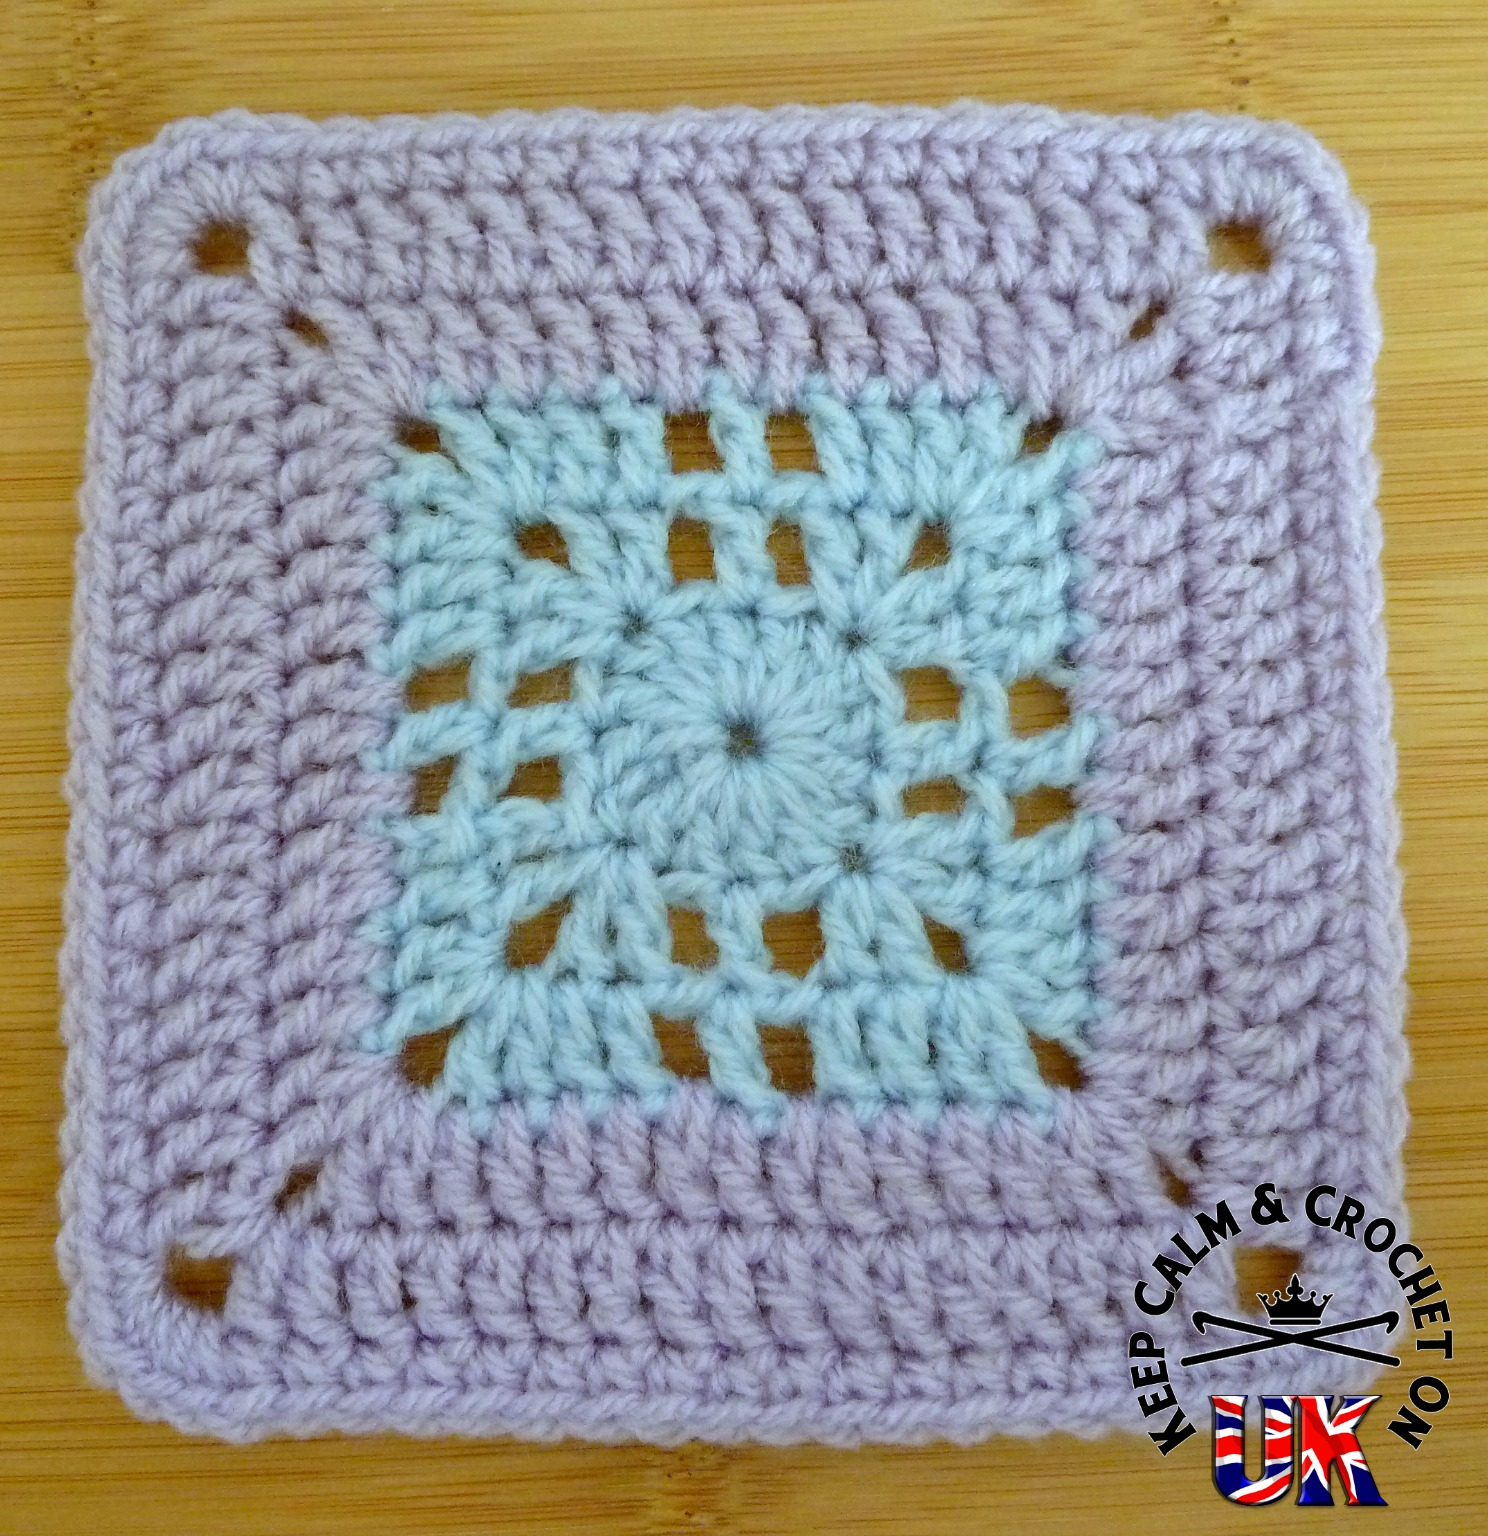 Crochet Cross Afghan Pattern Free : Free Pattern ? Mini Filet Cross Afghan Square Keep Calm ...